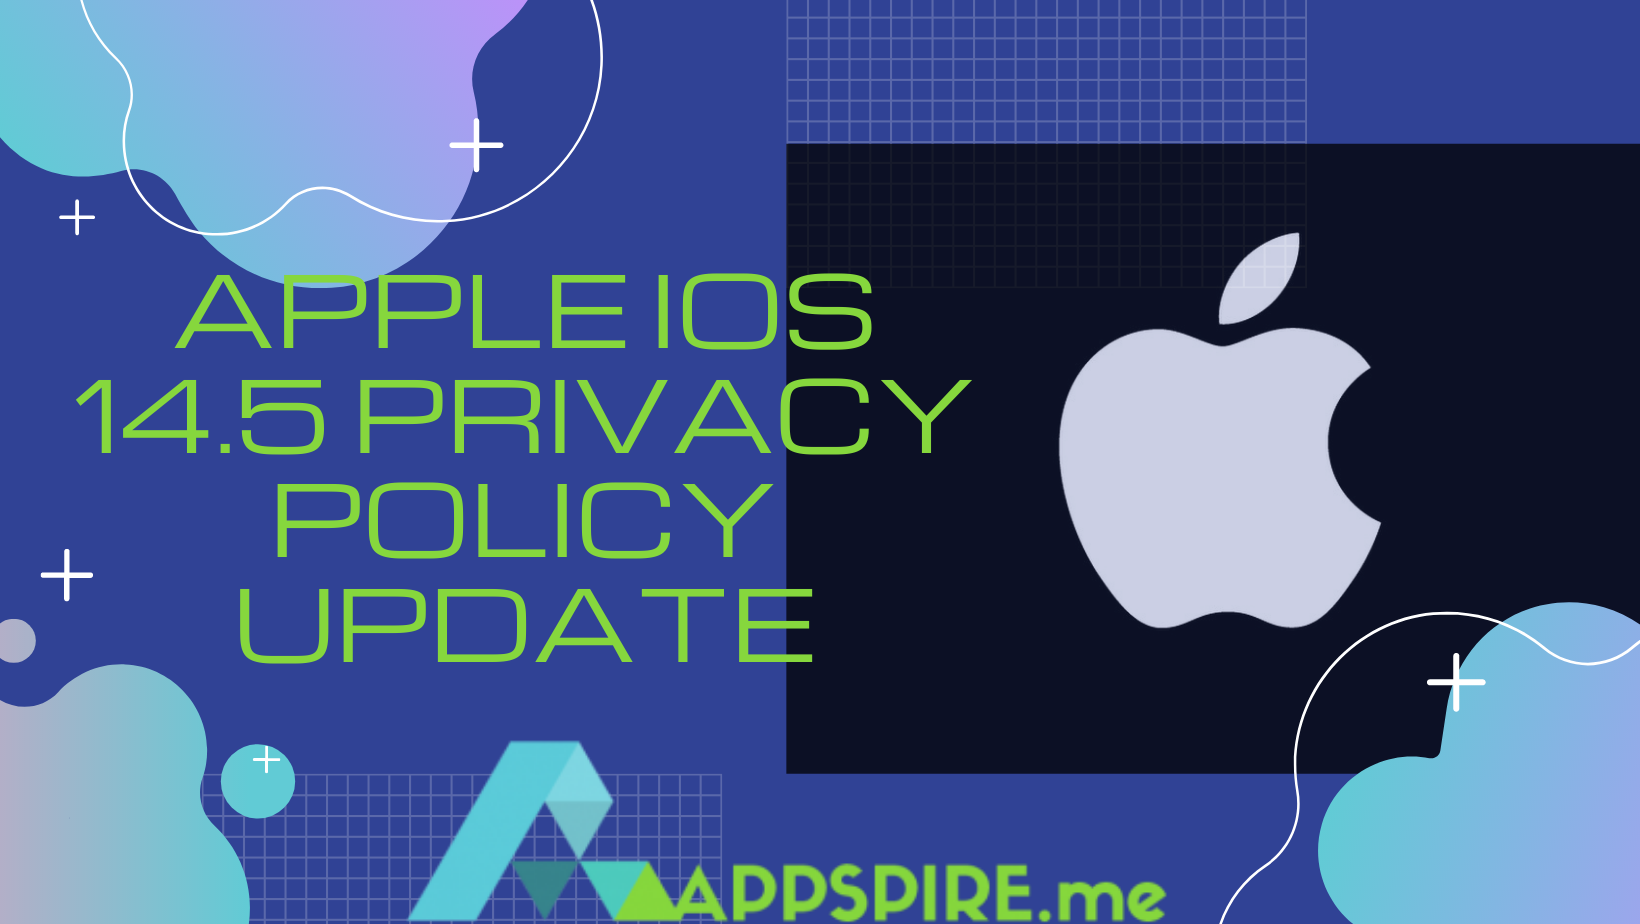 Apple's Privacy Policy Update March 2021